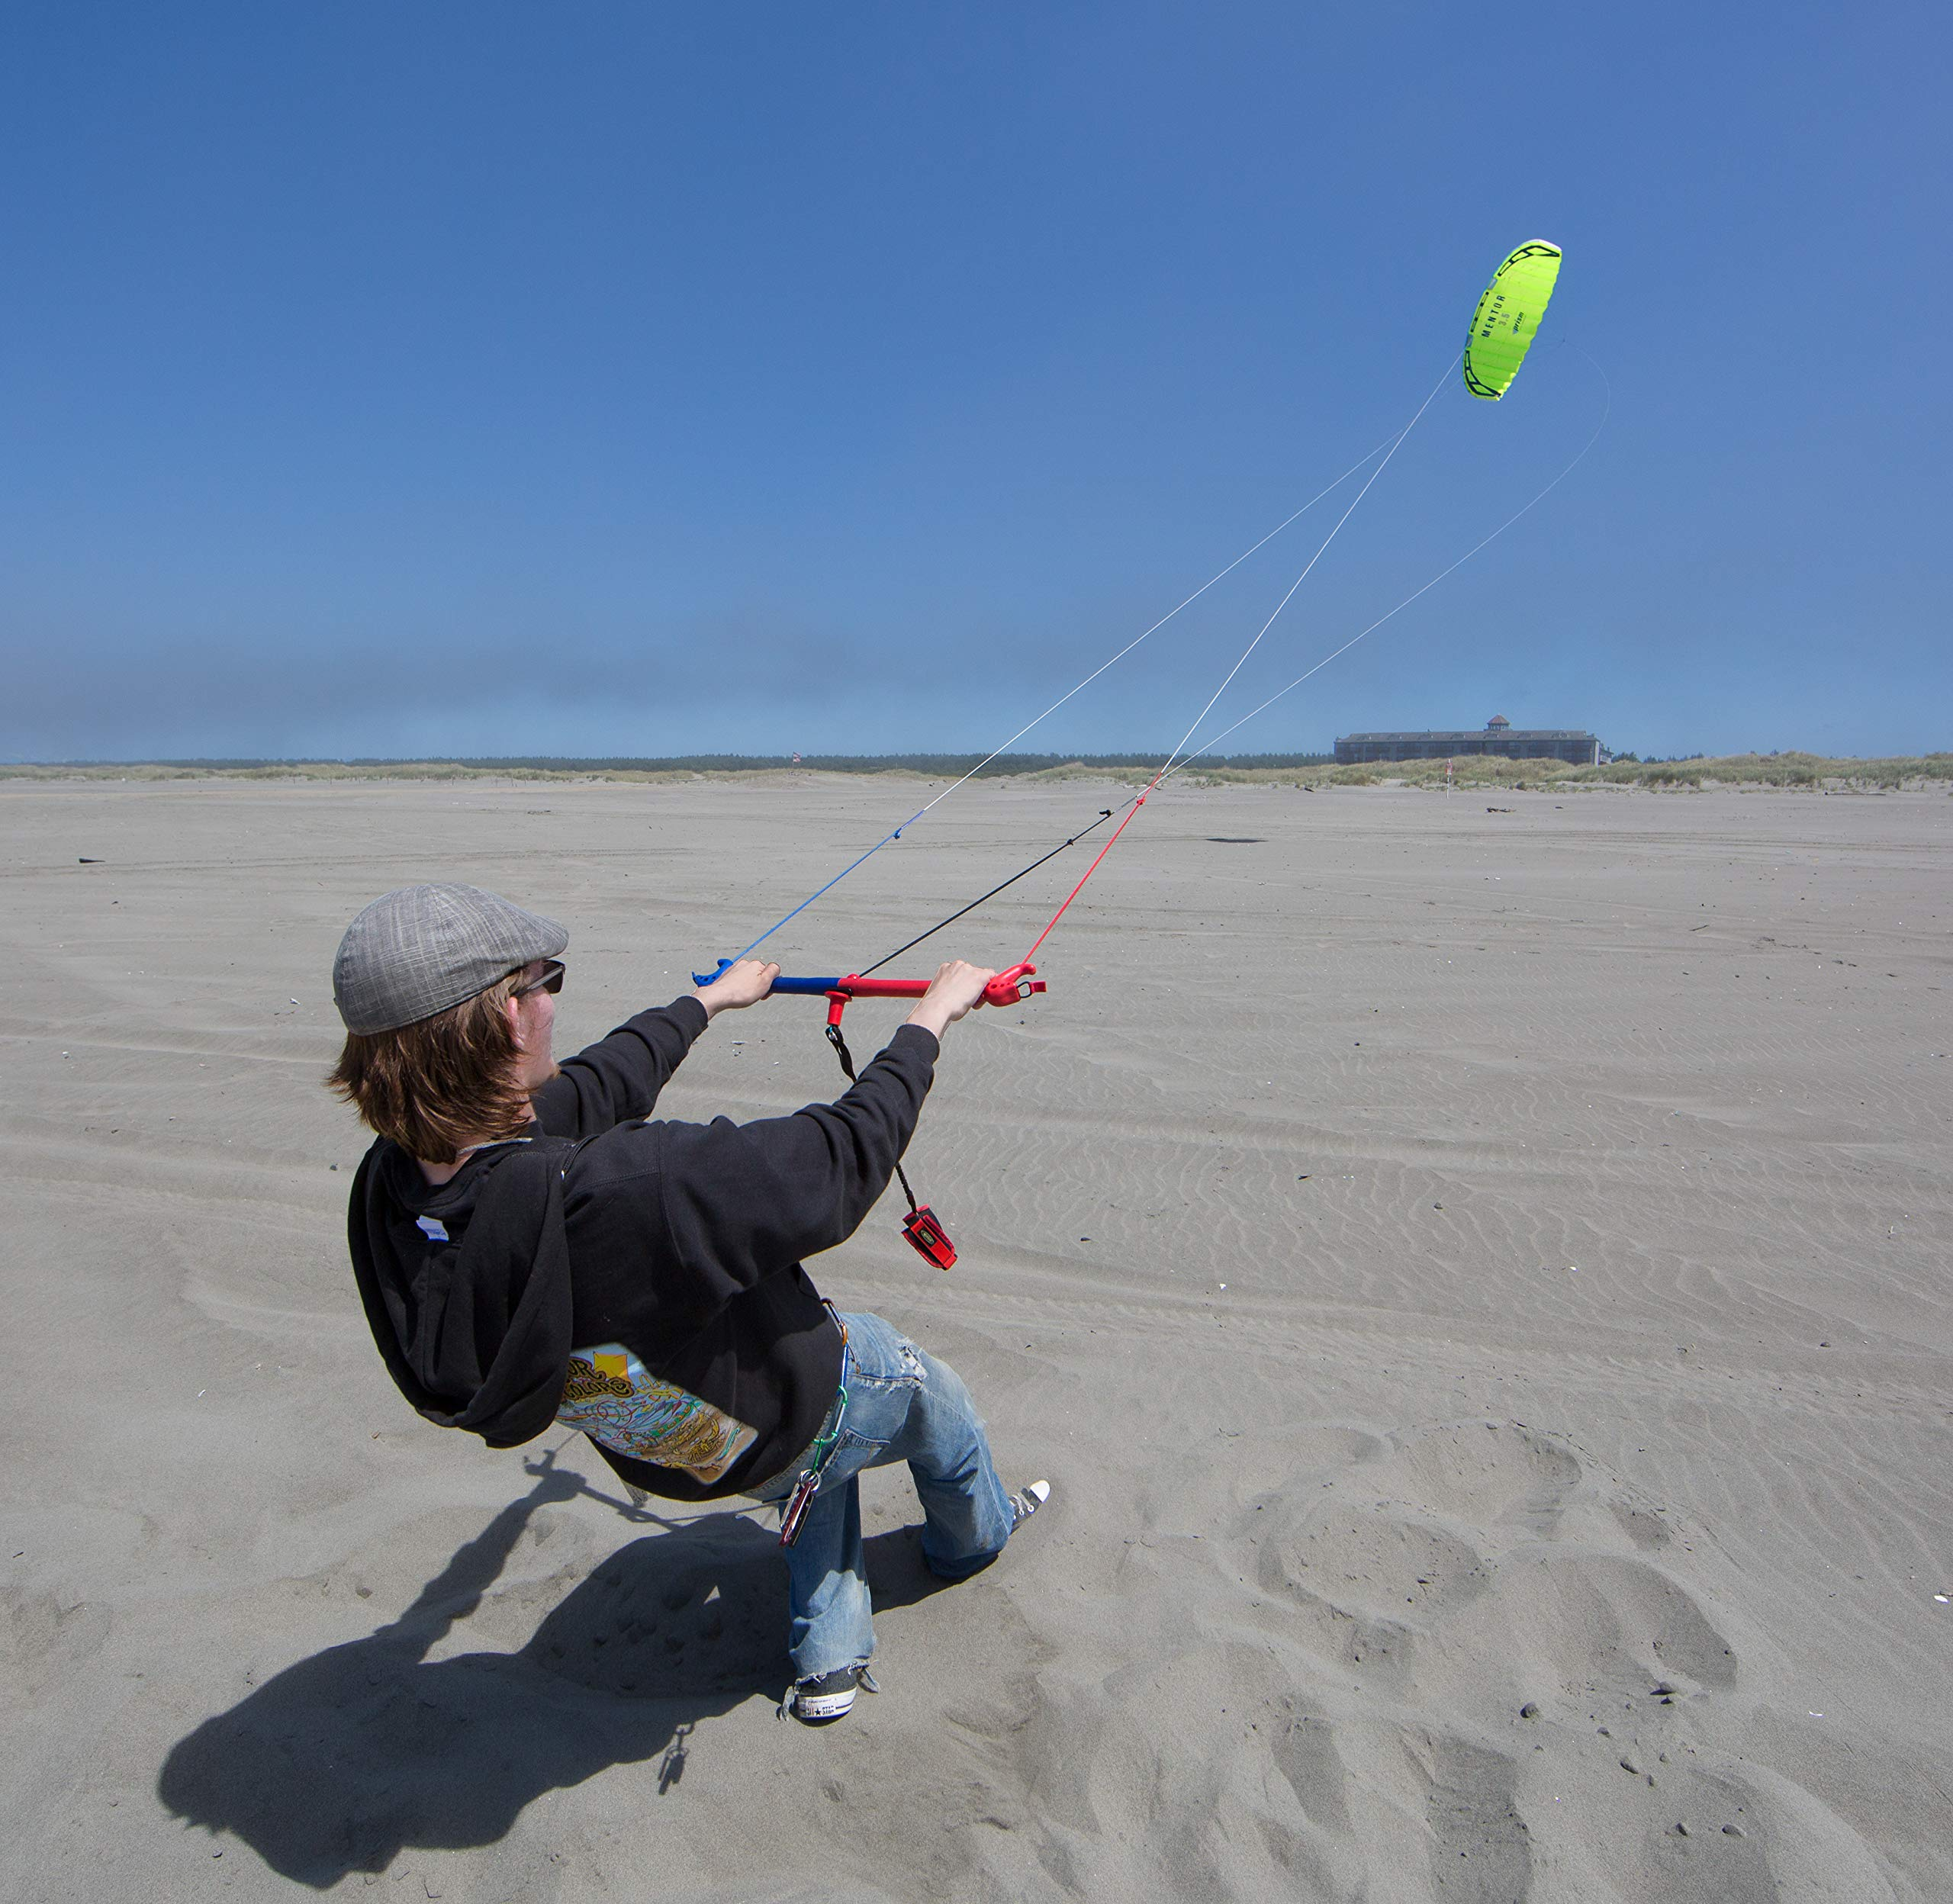 Prism Mentor 2.5m Water-relaunchable Three-line Power Kite Ready to Fly with Control bar, Ground Stake and Quick Release Safety Leash by Prism Kite Technology (Image #3)